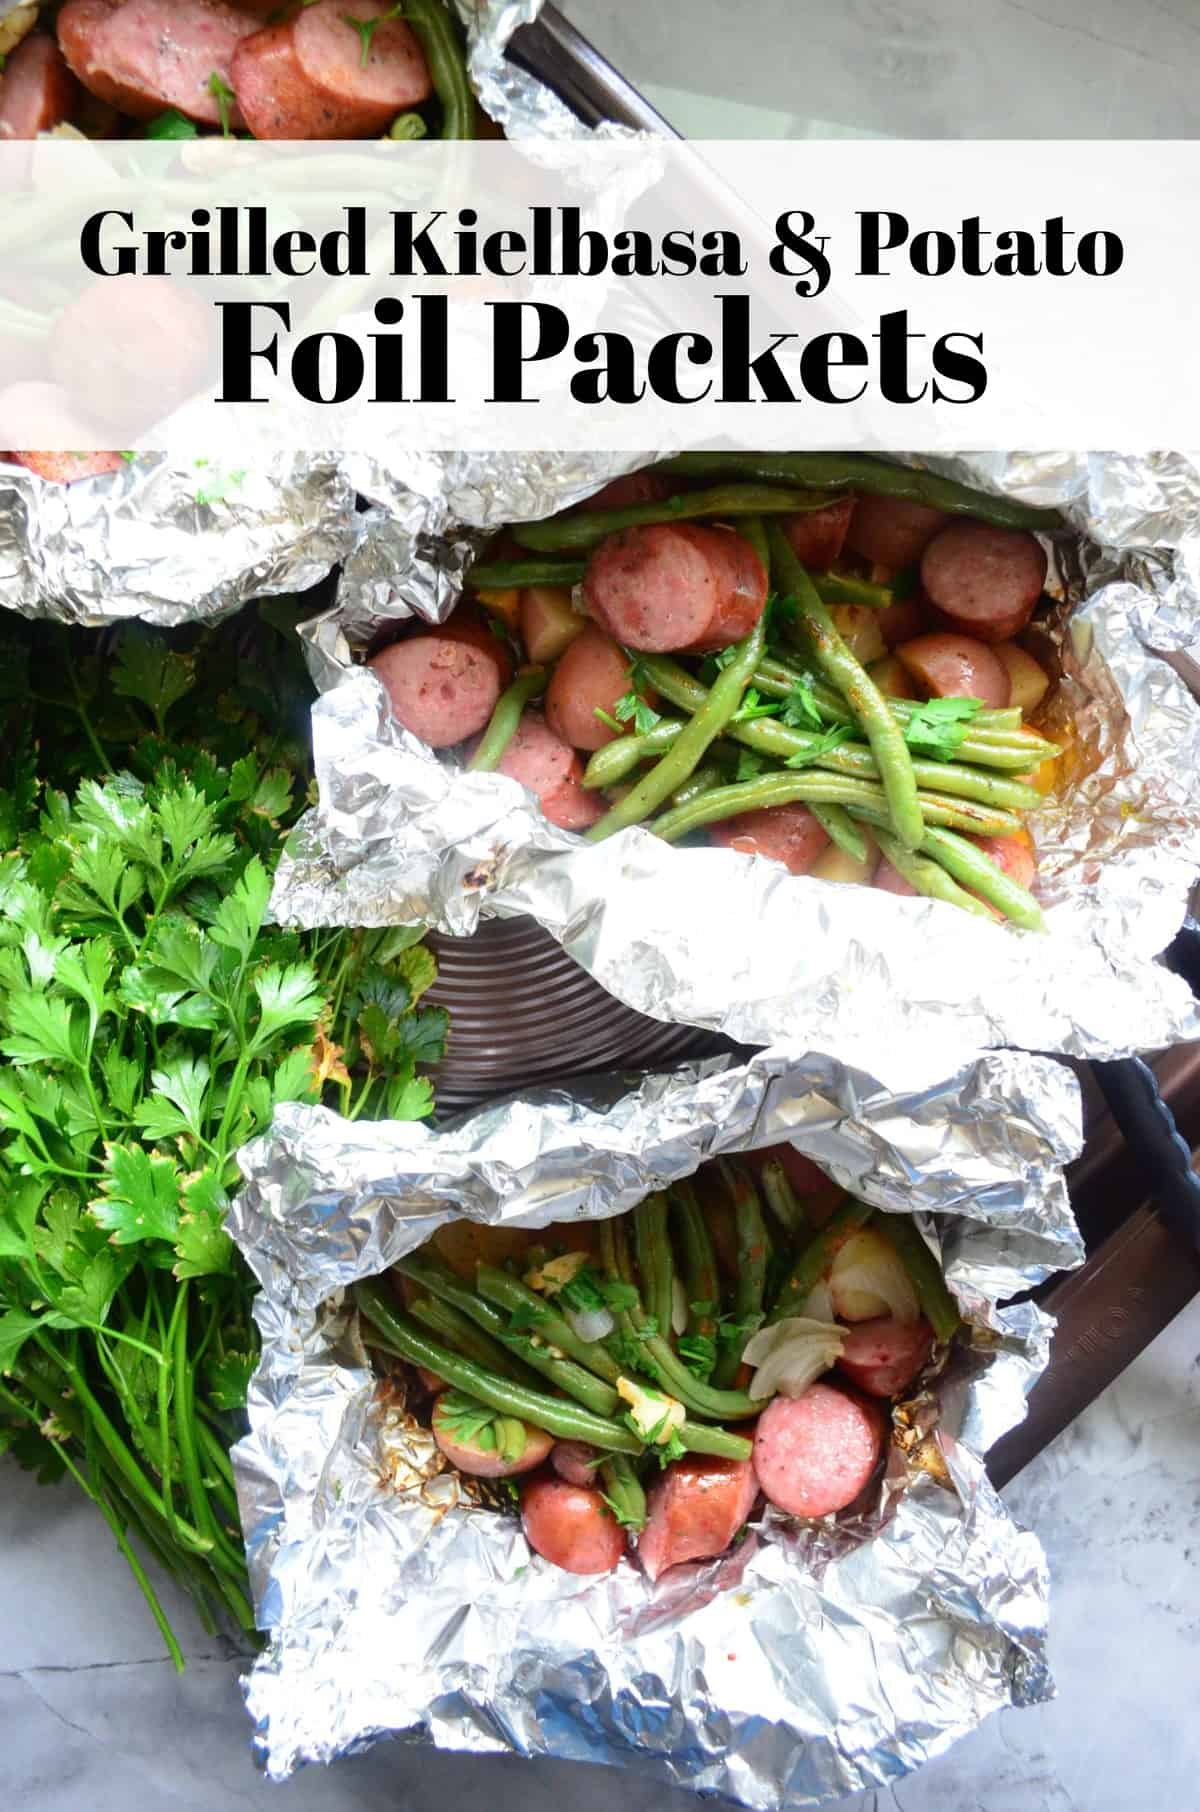 Grilled Kielbasa, Potato, green beans, and parsley in Foil Packets.